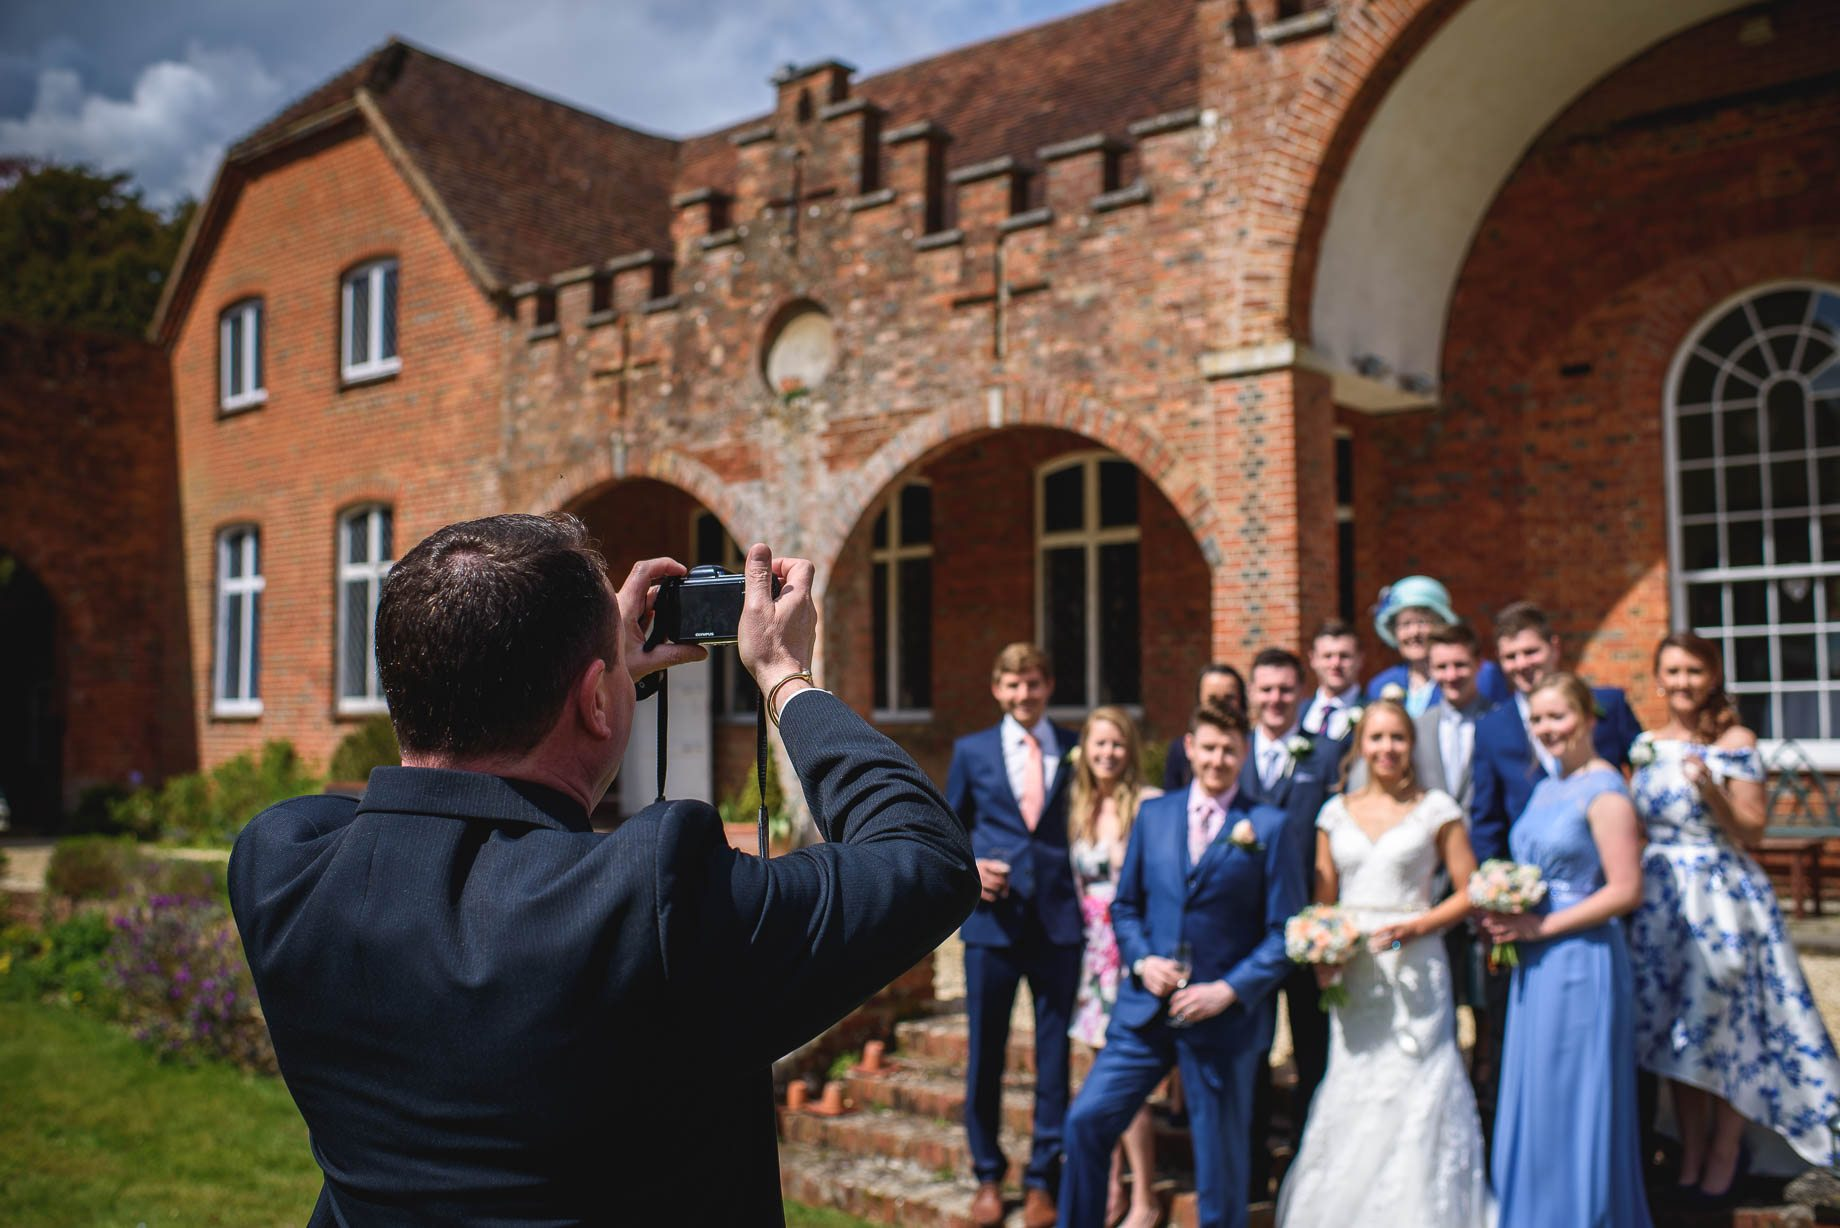 Hampshire wedding photography by Guy Collier - Emily and Tom (81 of 164)